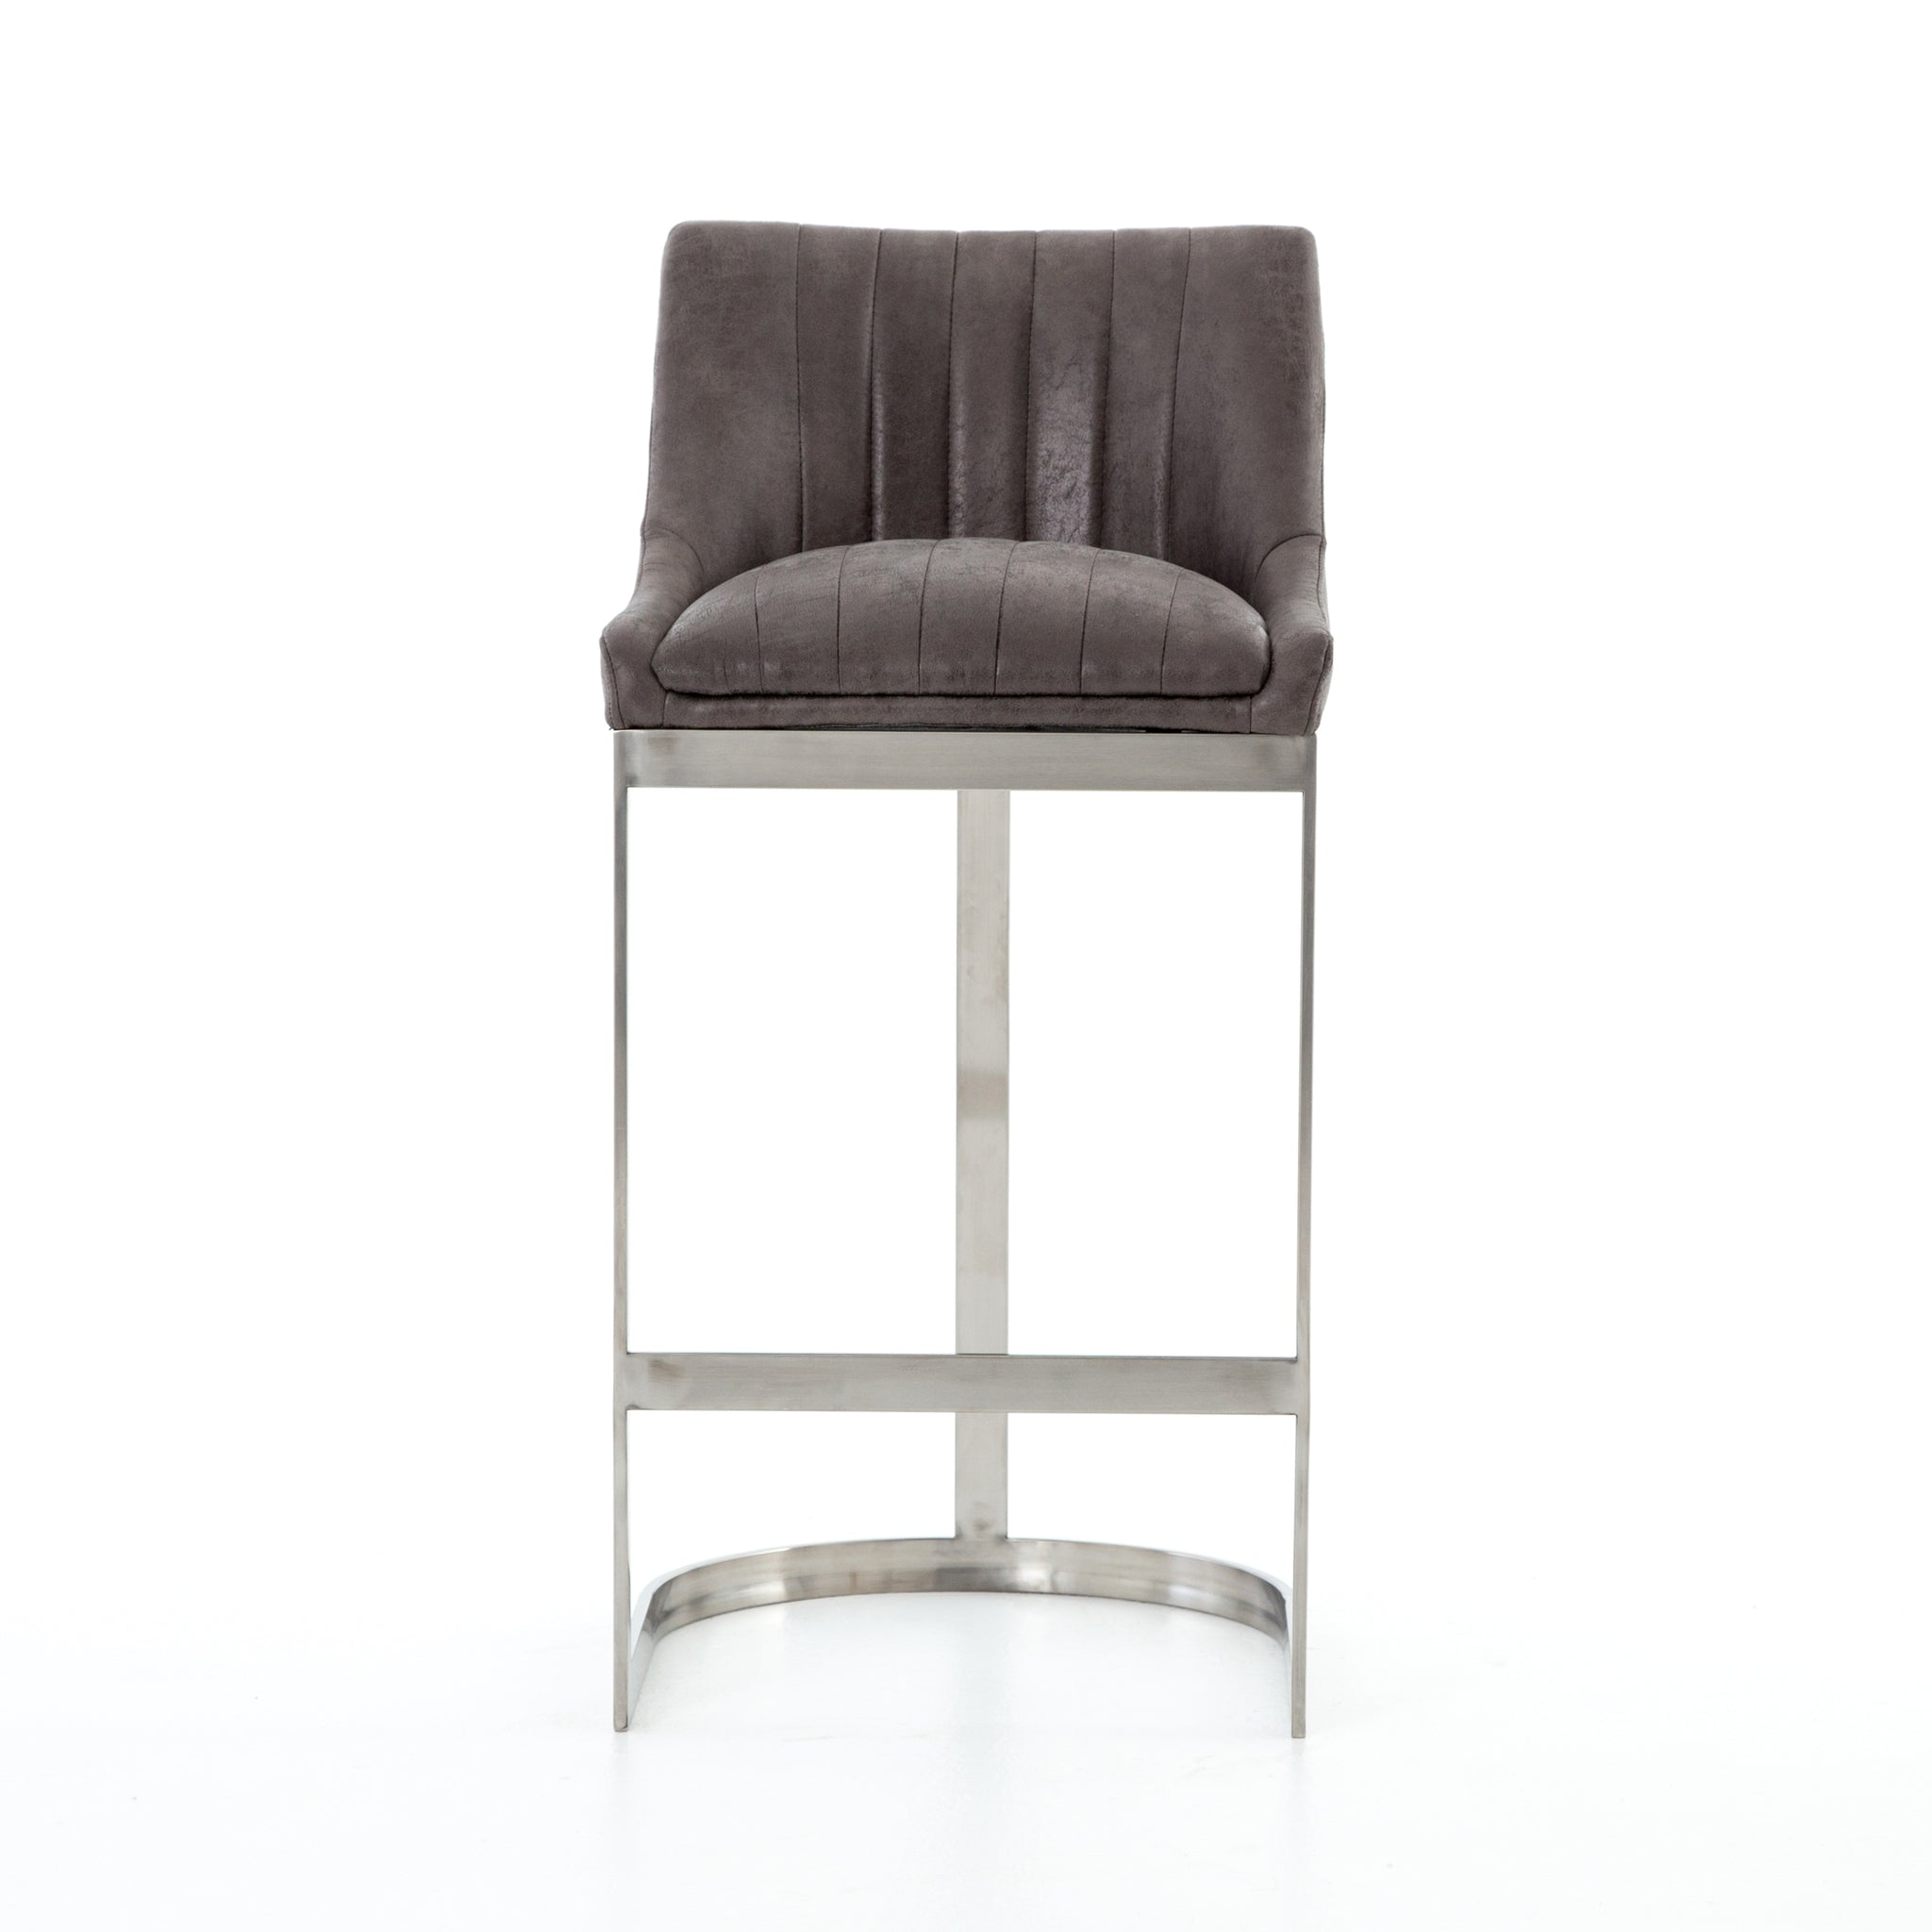 Awesome Channel Tufted Modern Barstool Graphite Set Of 3 Bar Height Stools Inzonedesignstudio Interior Chair Design Inzonedesignstudiocom